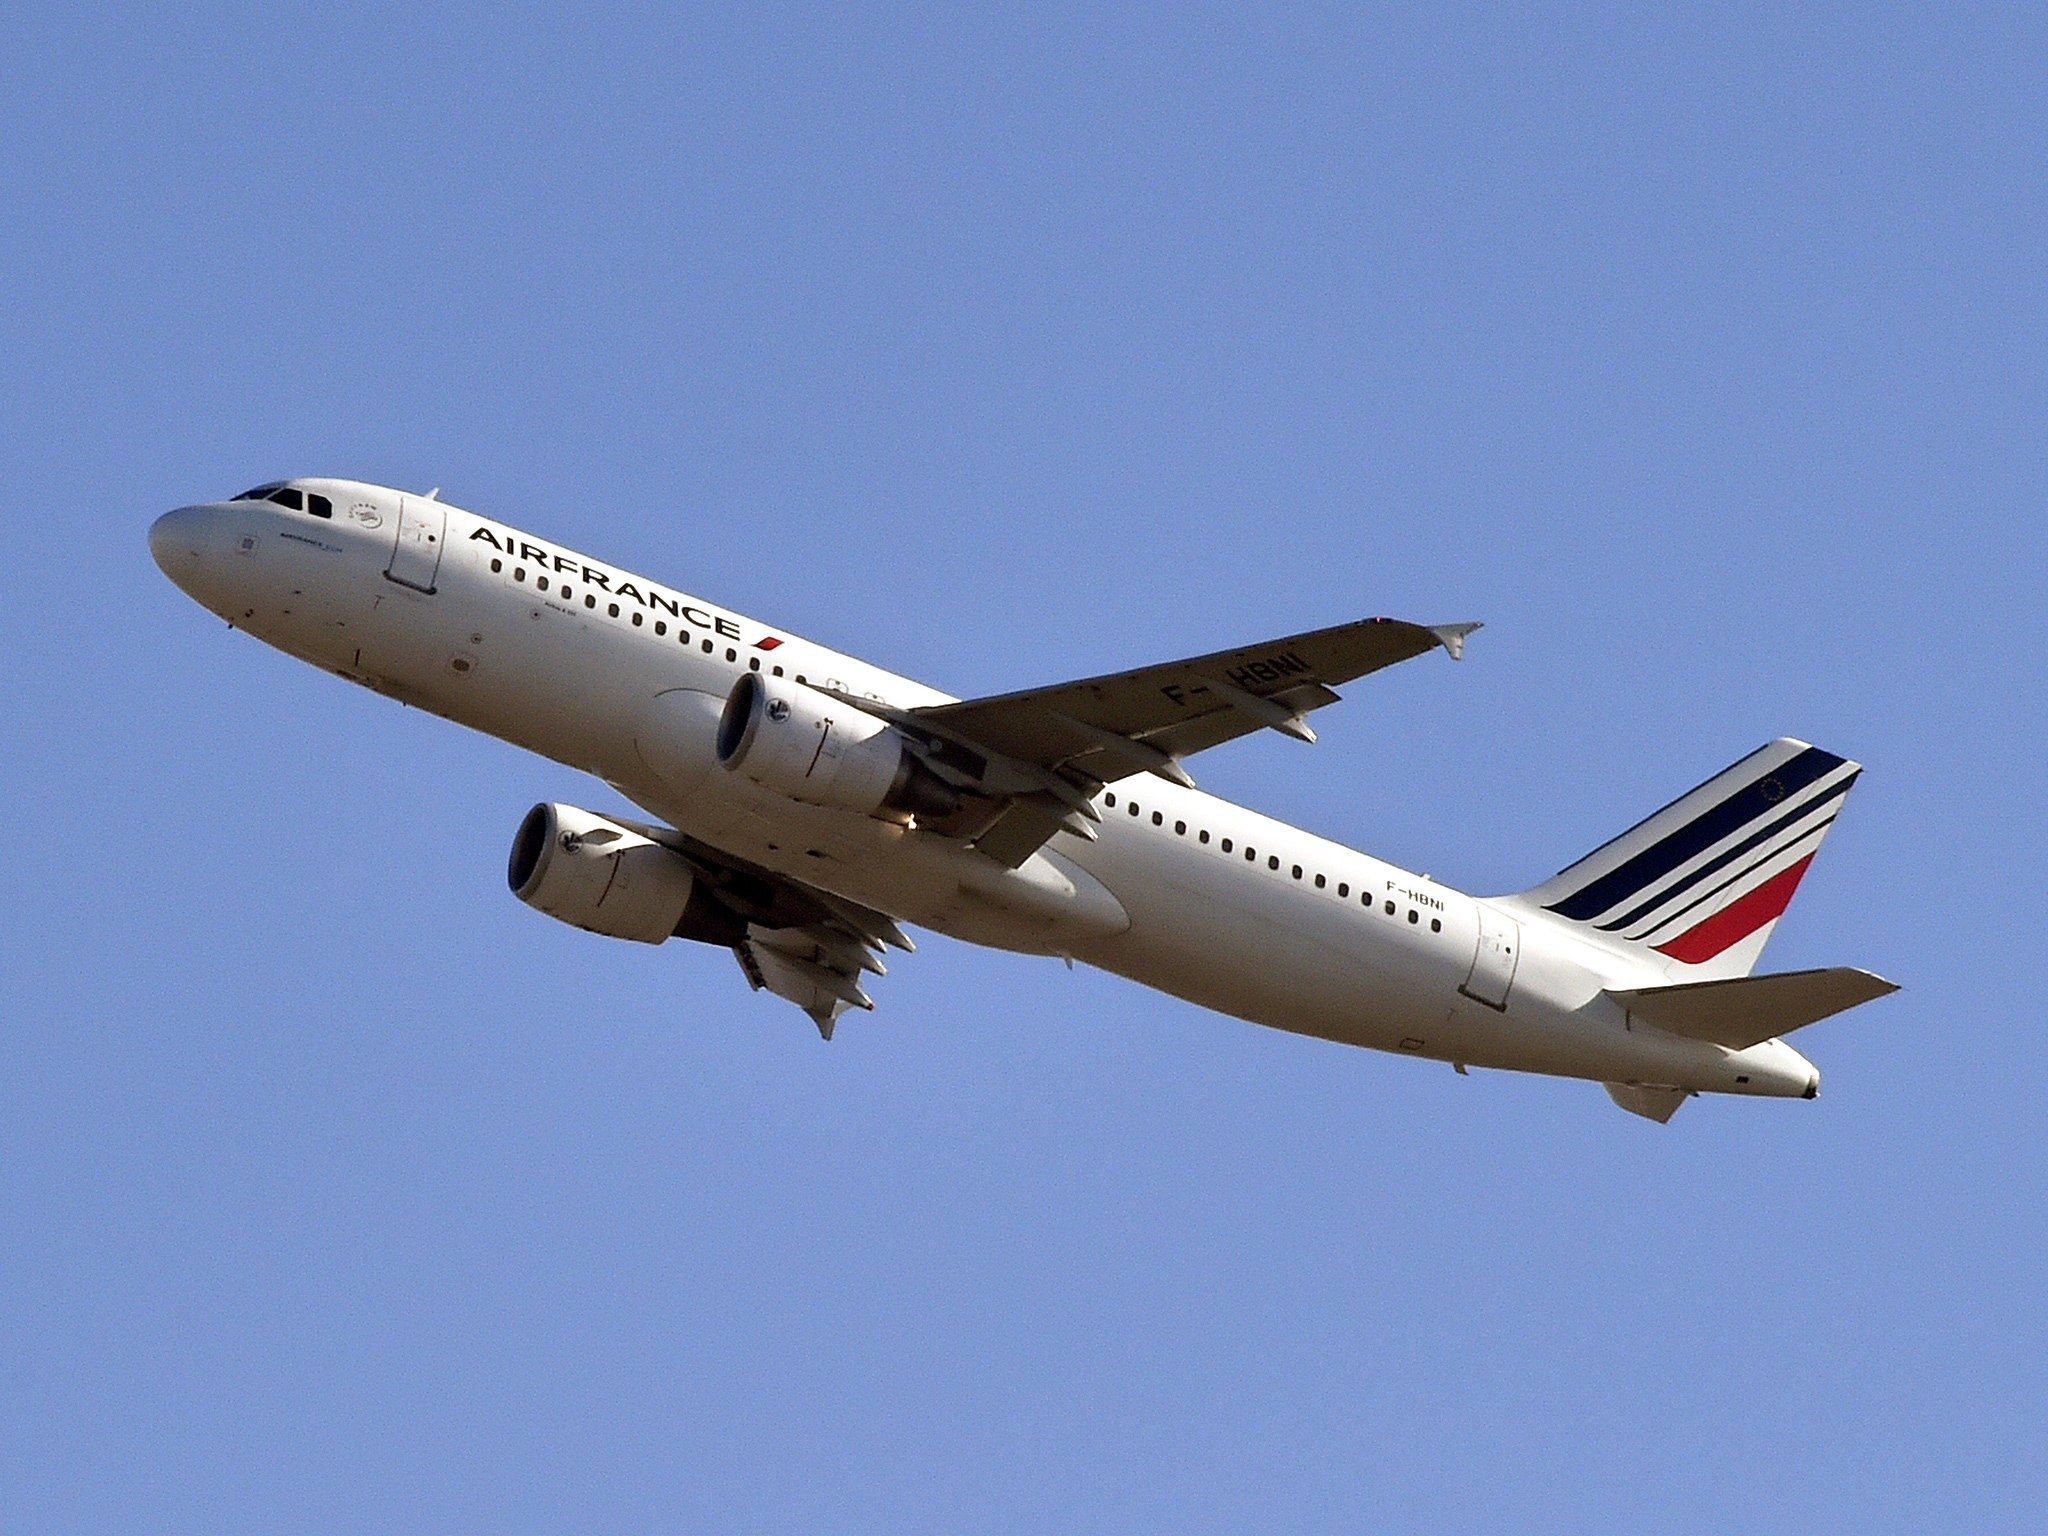 Female Air France flight attendants who work the new three-times-a-week route will be required to wear headscarves when in Iran—and many are upset with the ruling.